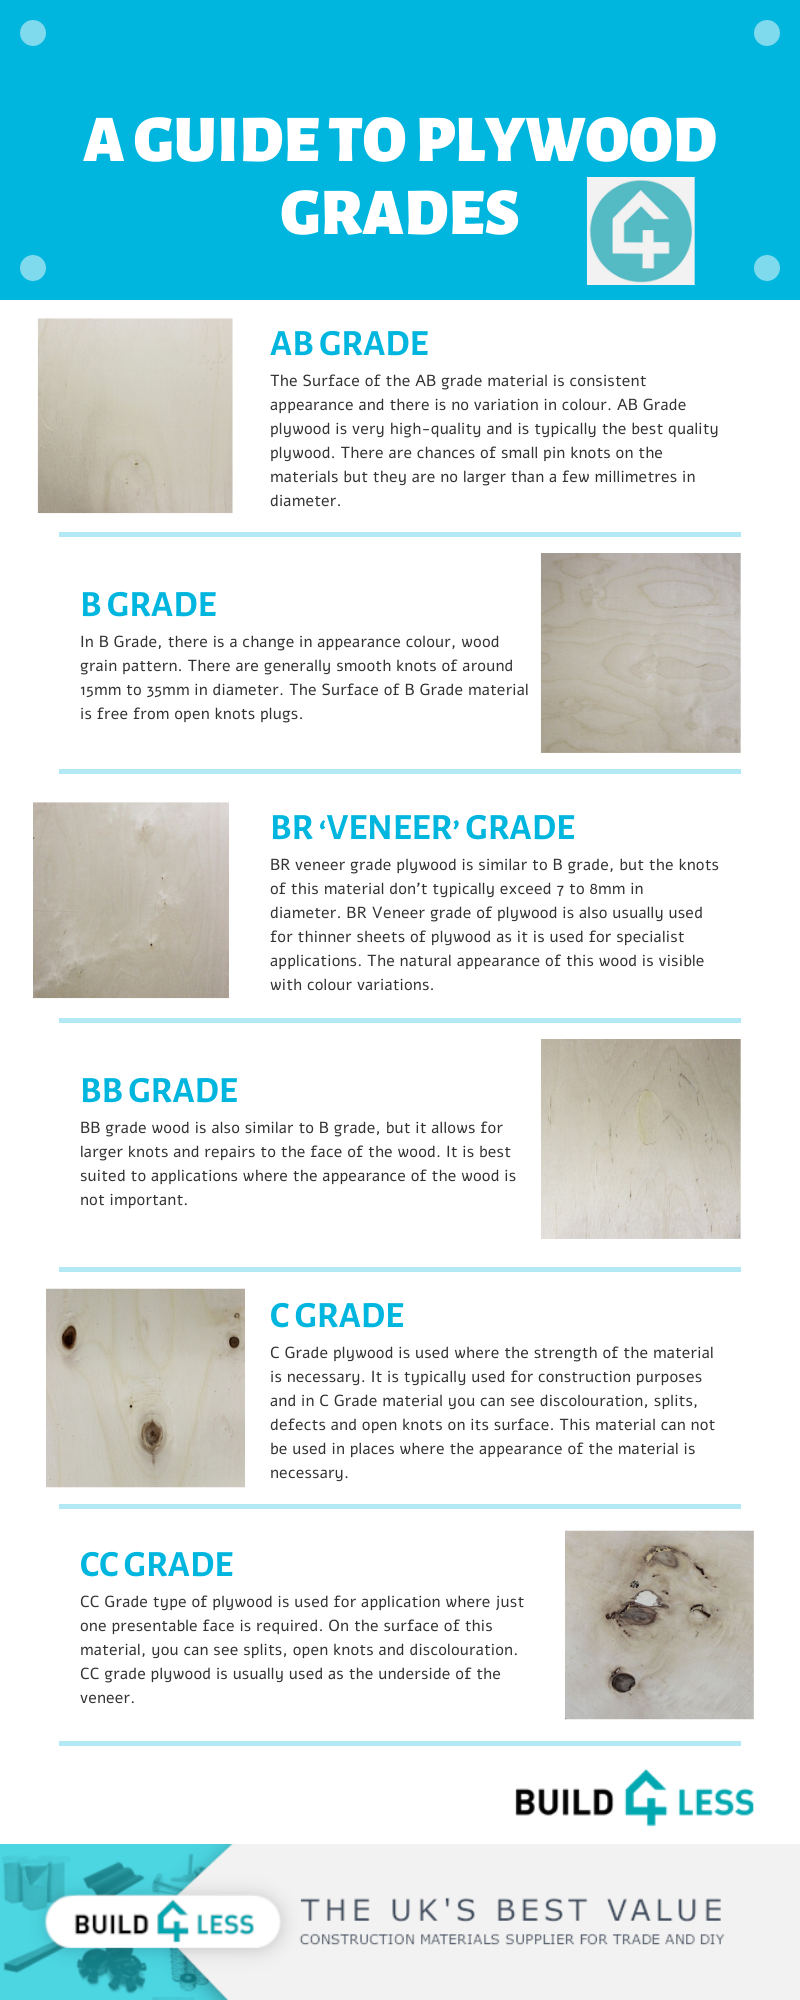 Types of Plywood Grades